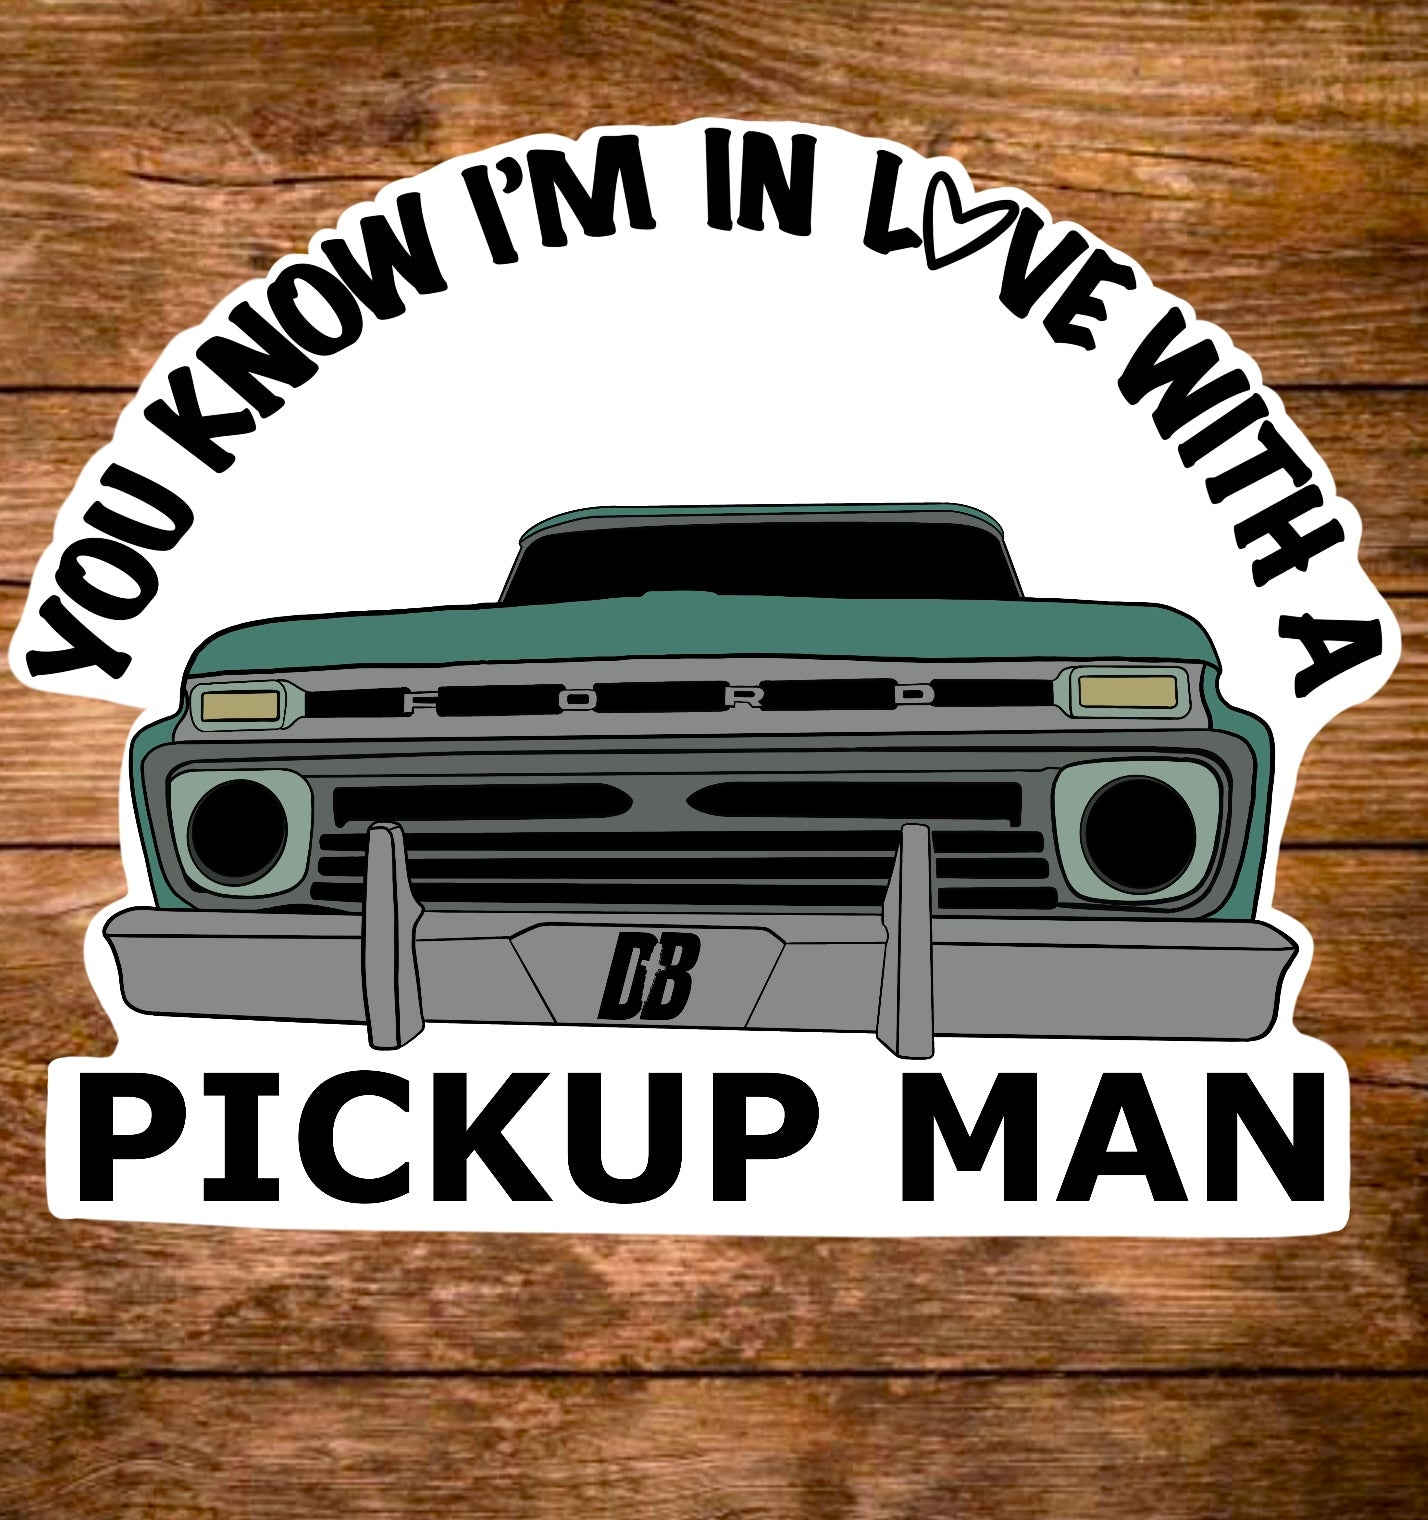 Pickup Man Sticker